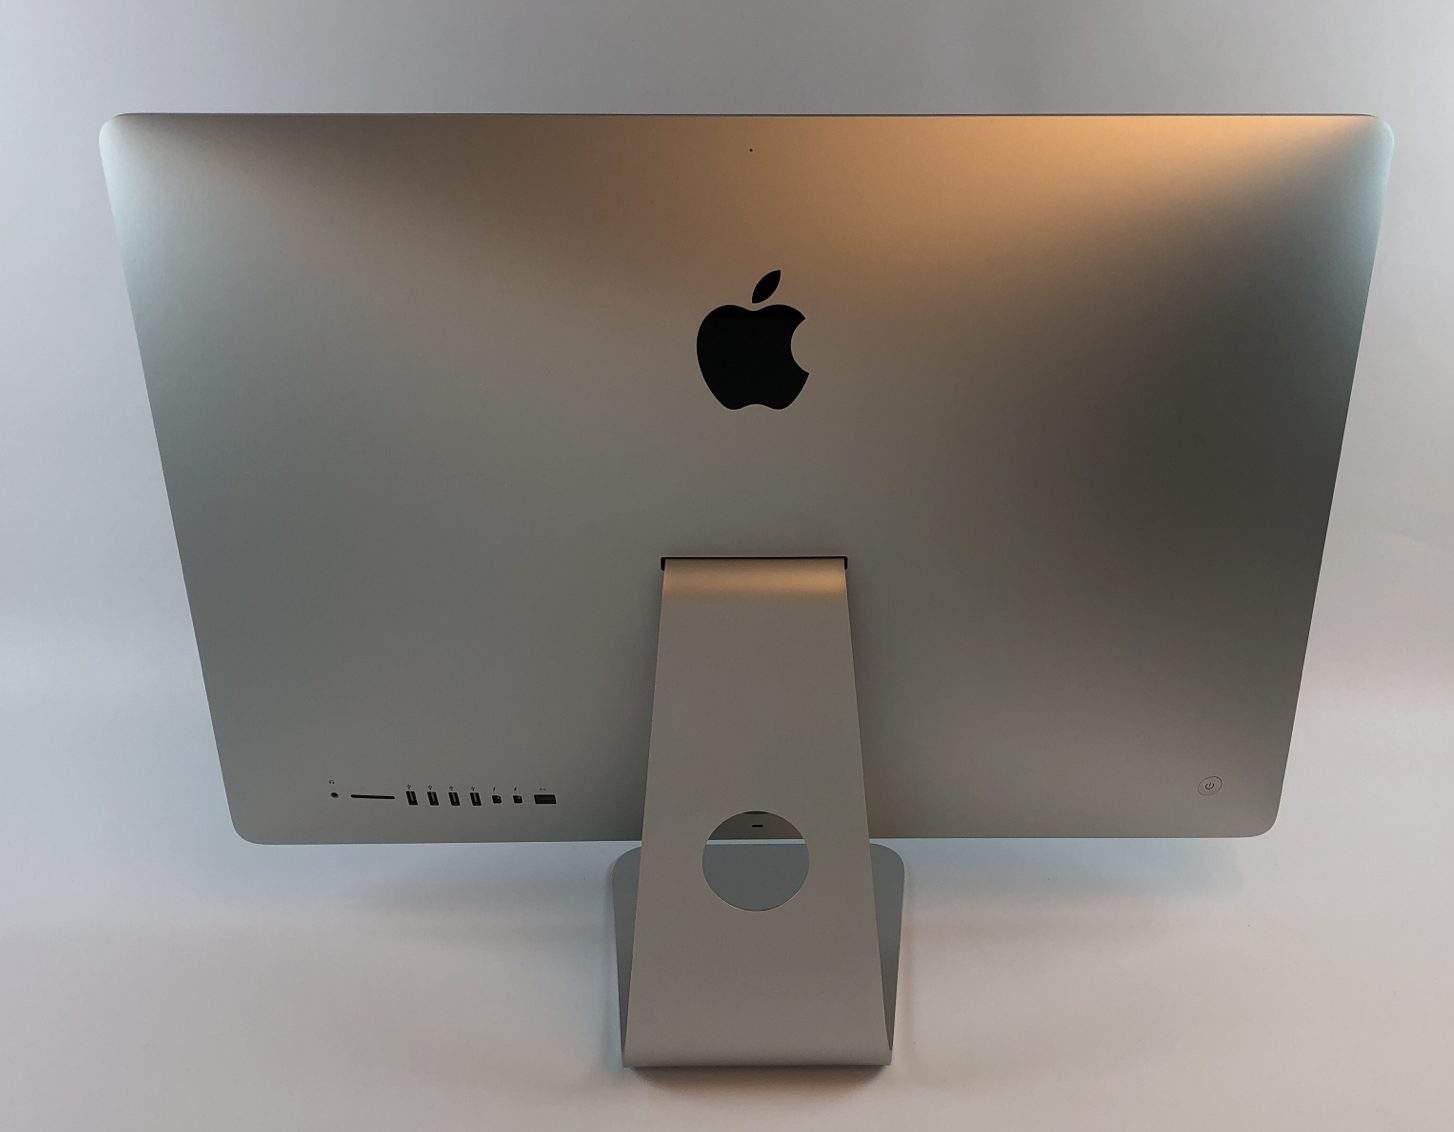 "iMac 27"" Retina 5K Late 2015 (Intel Quad-Core i5 3.2 GHz 24 GB RAM 1 TB Fusion Drive), Intel Quad-Core i5 3.2 GHz, 24 GB RAM, 1 TB Fusion Drive, immagine 2"